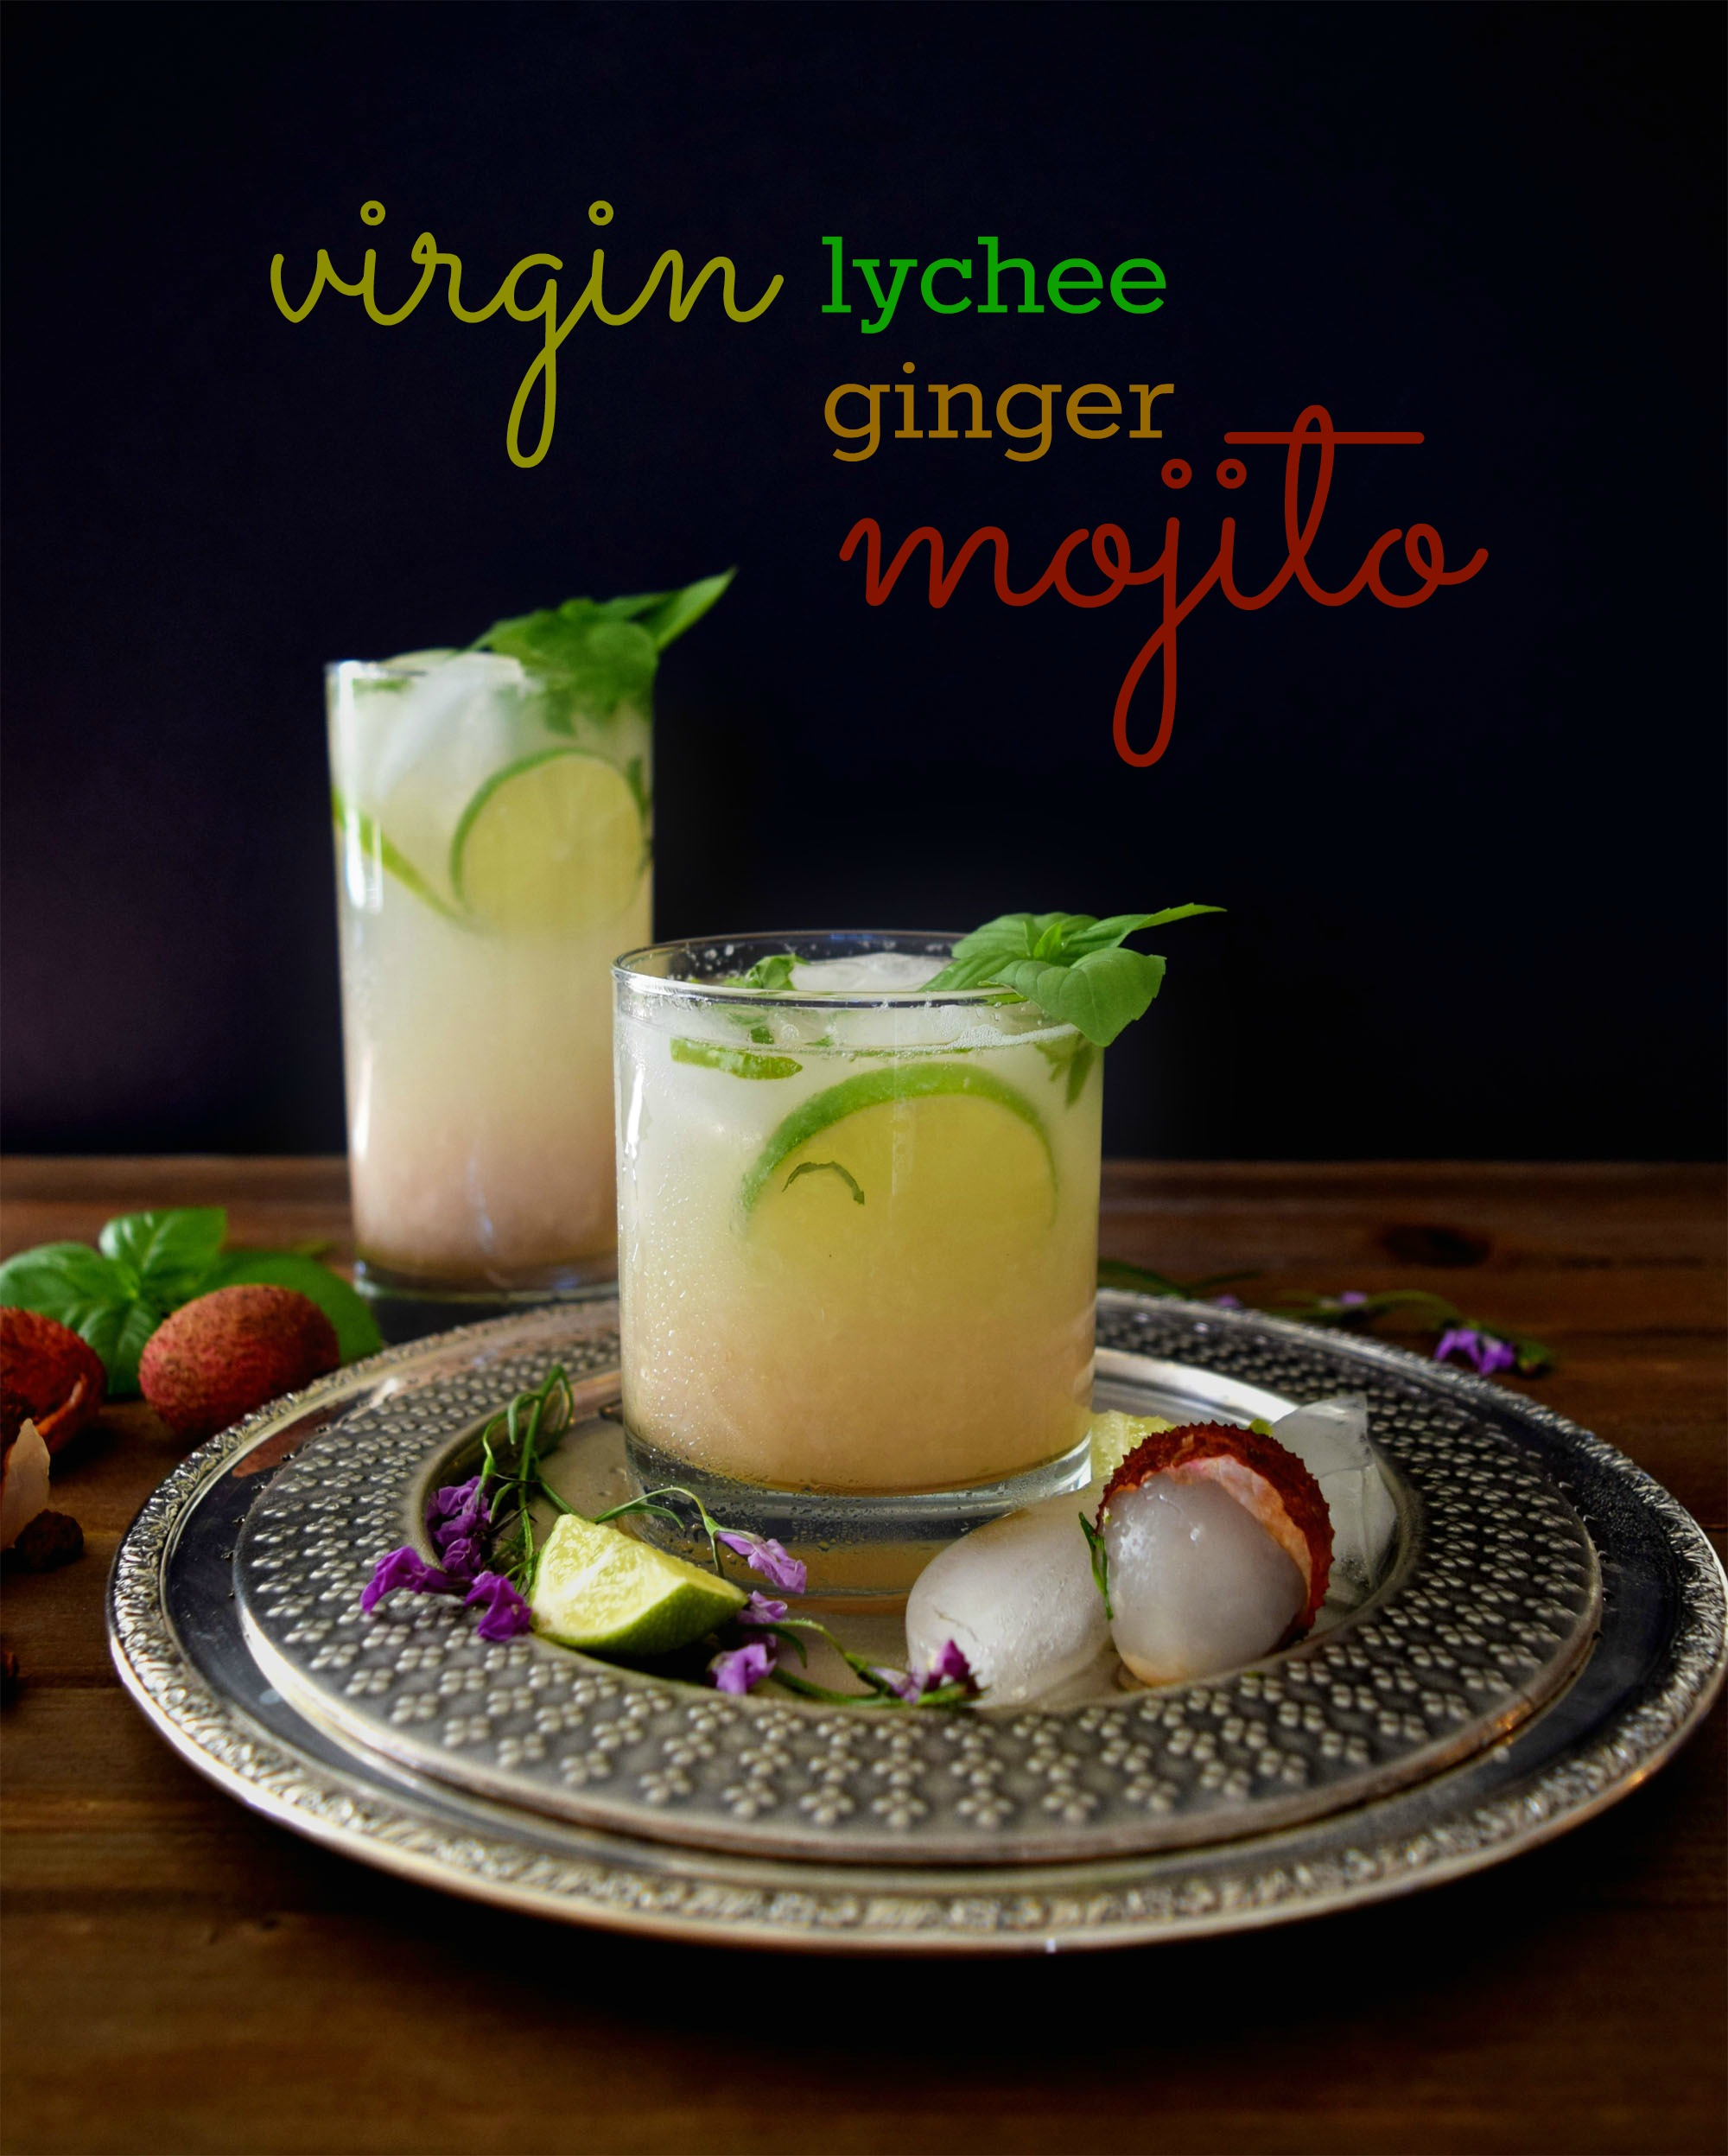 Virgin lychee ginger mojito with tips on making a perfect mojito